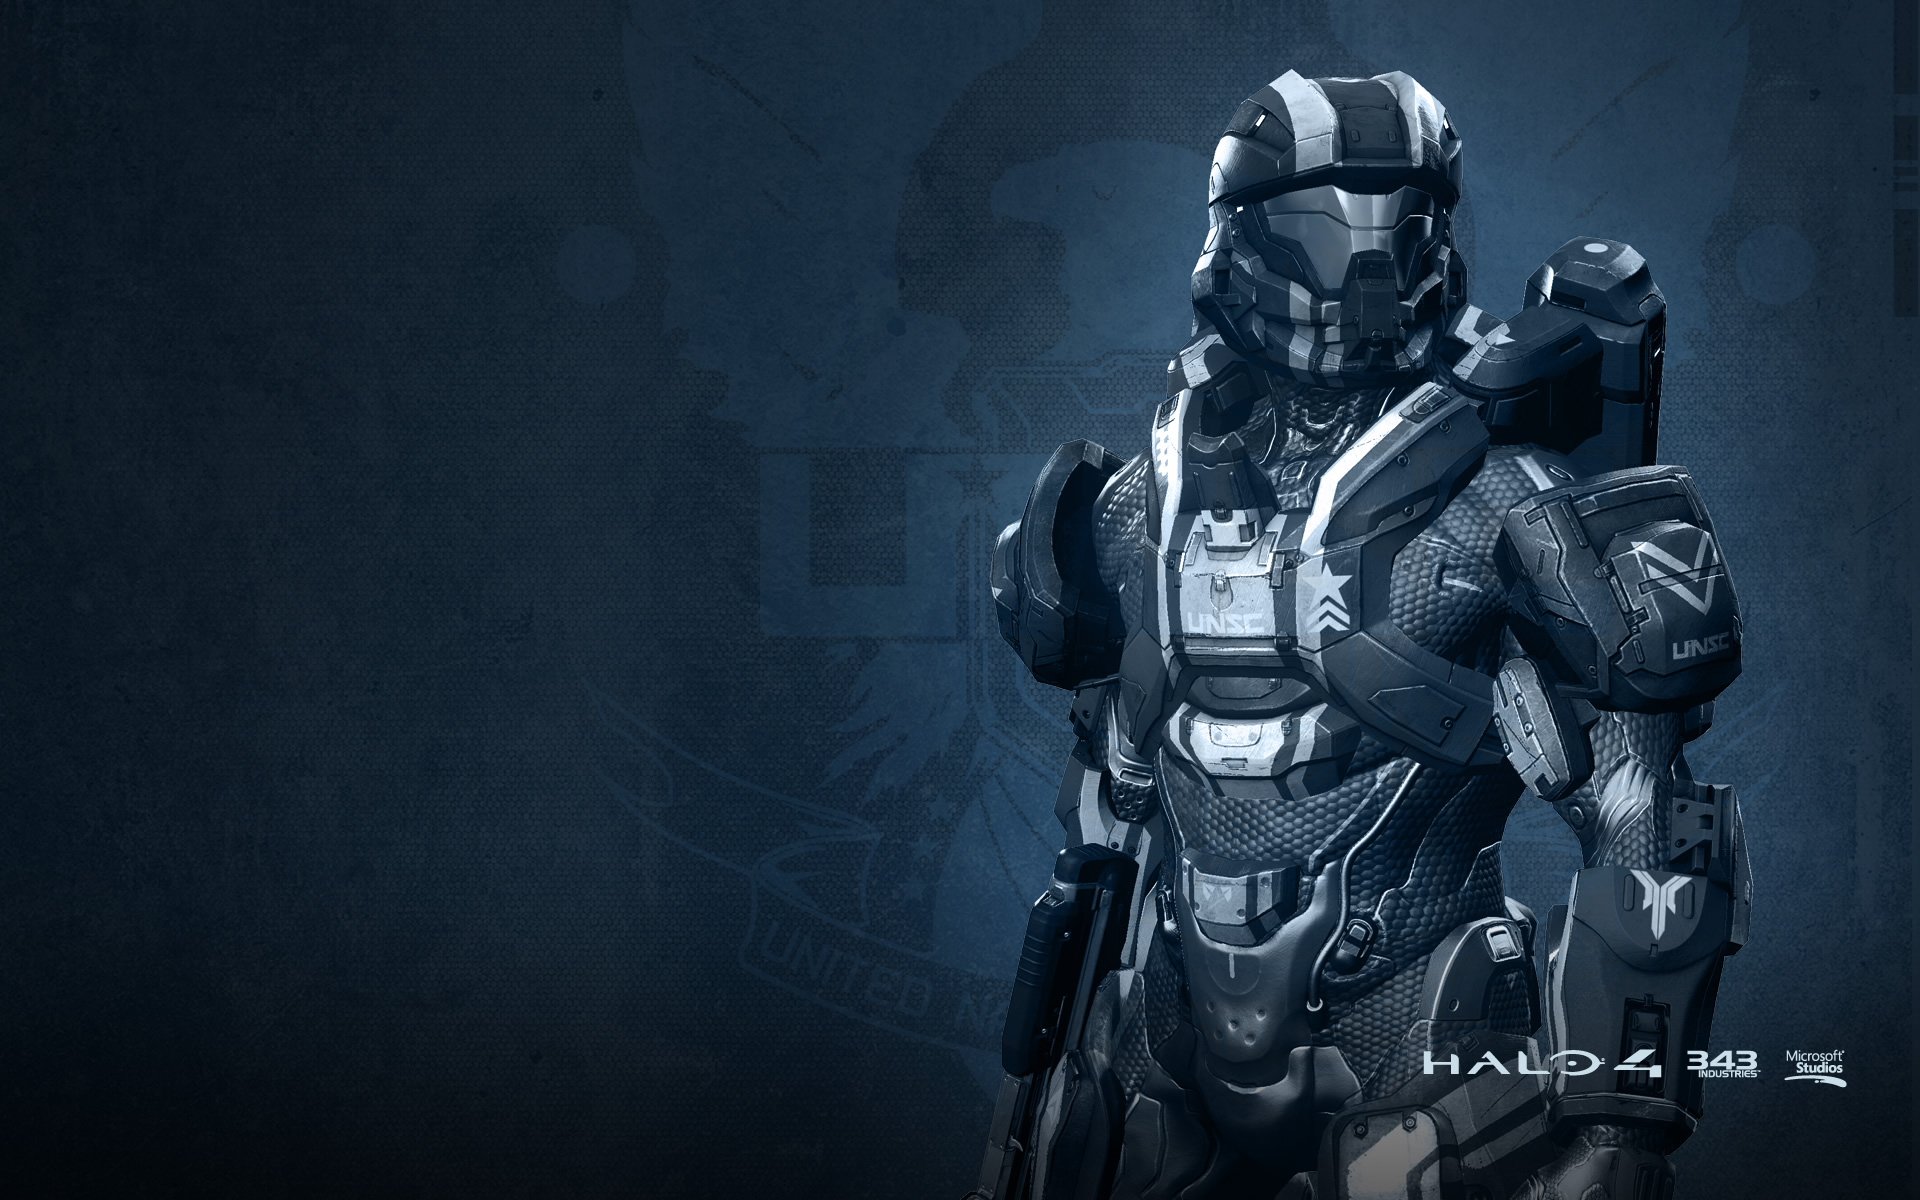 Halo 4 HD Wallpaper Background Image 1920x1200 ID354232 1920x1200